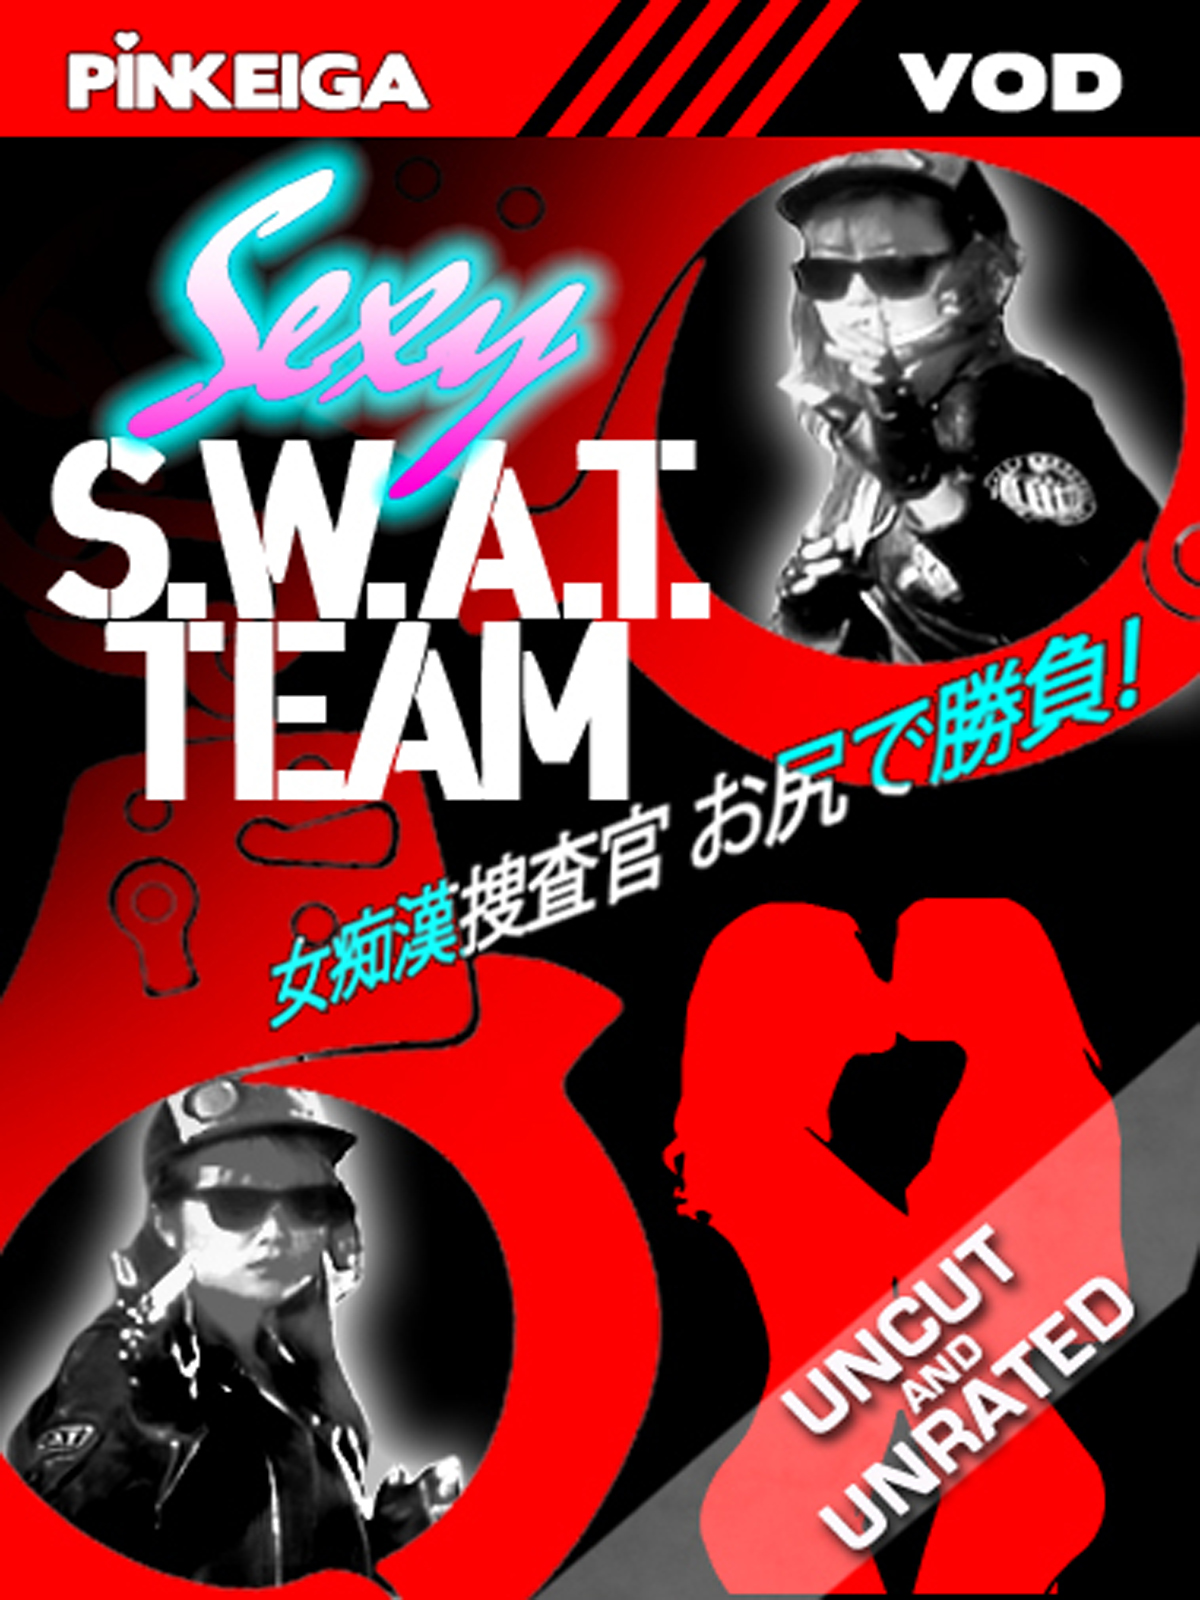 Sexy S.W.A.T. Team -SD- DOWNLOAD TO OWN